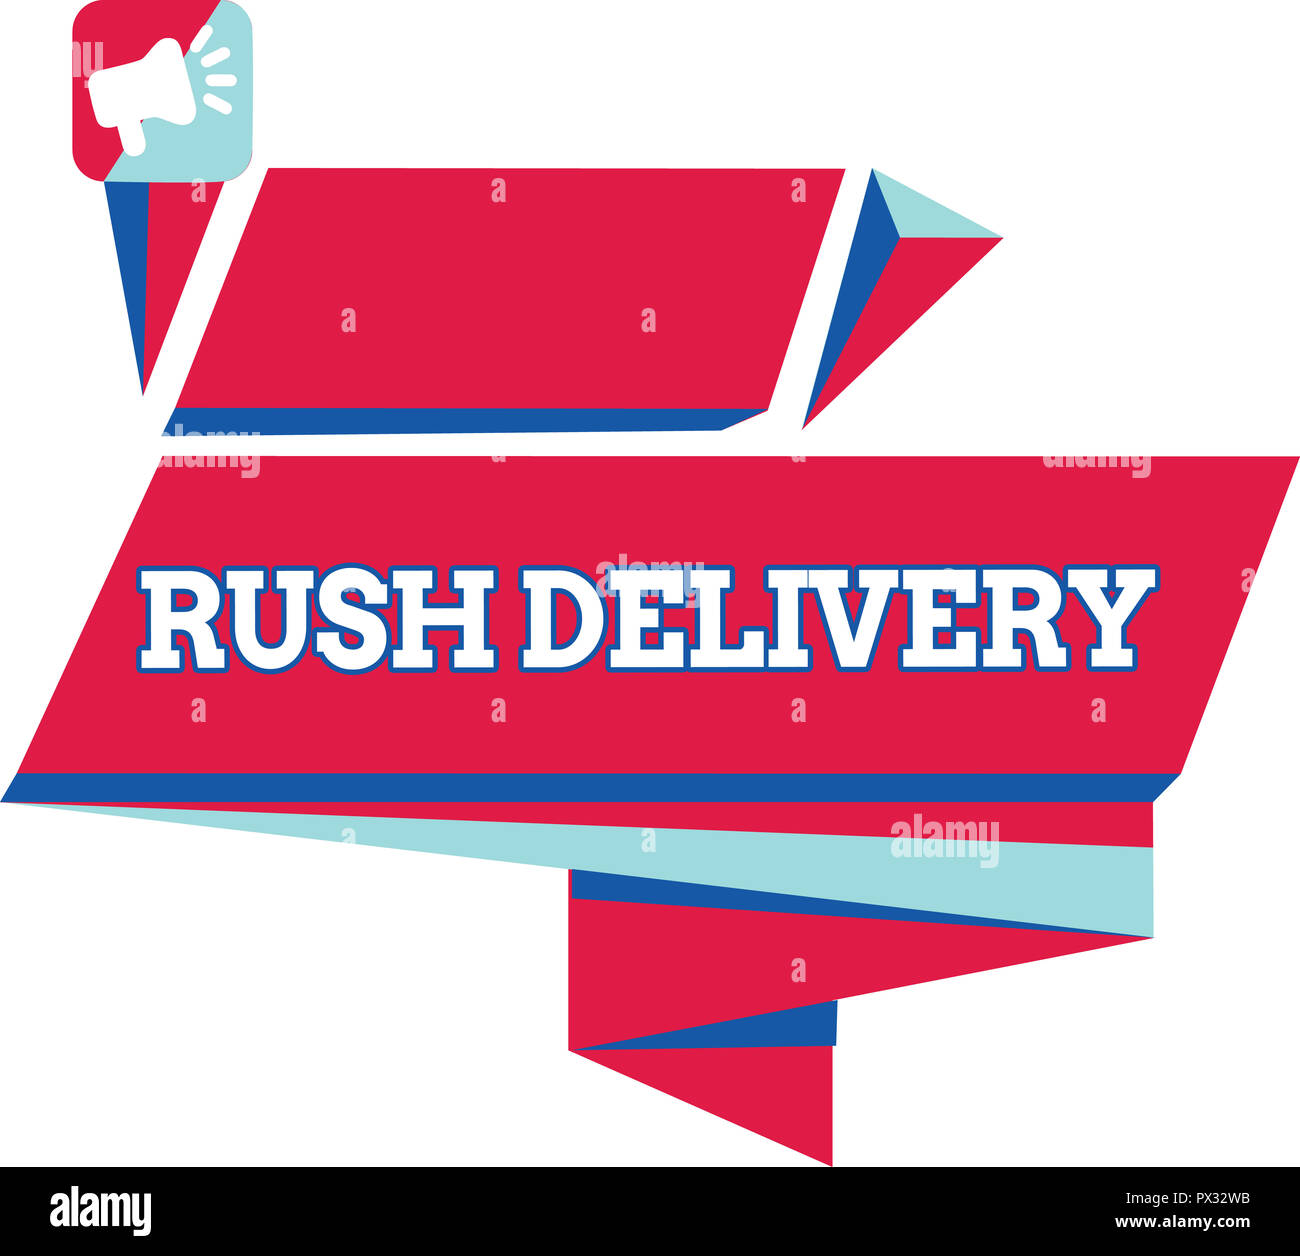 Text sign showing Rush Delivery. Conceptual photo Urgency in transporting goods to customer Urgent need. - Stock Image